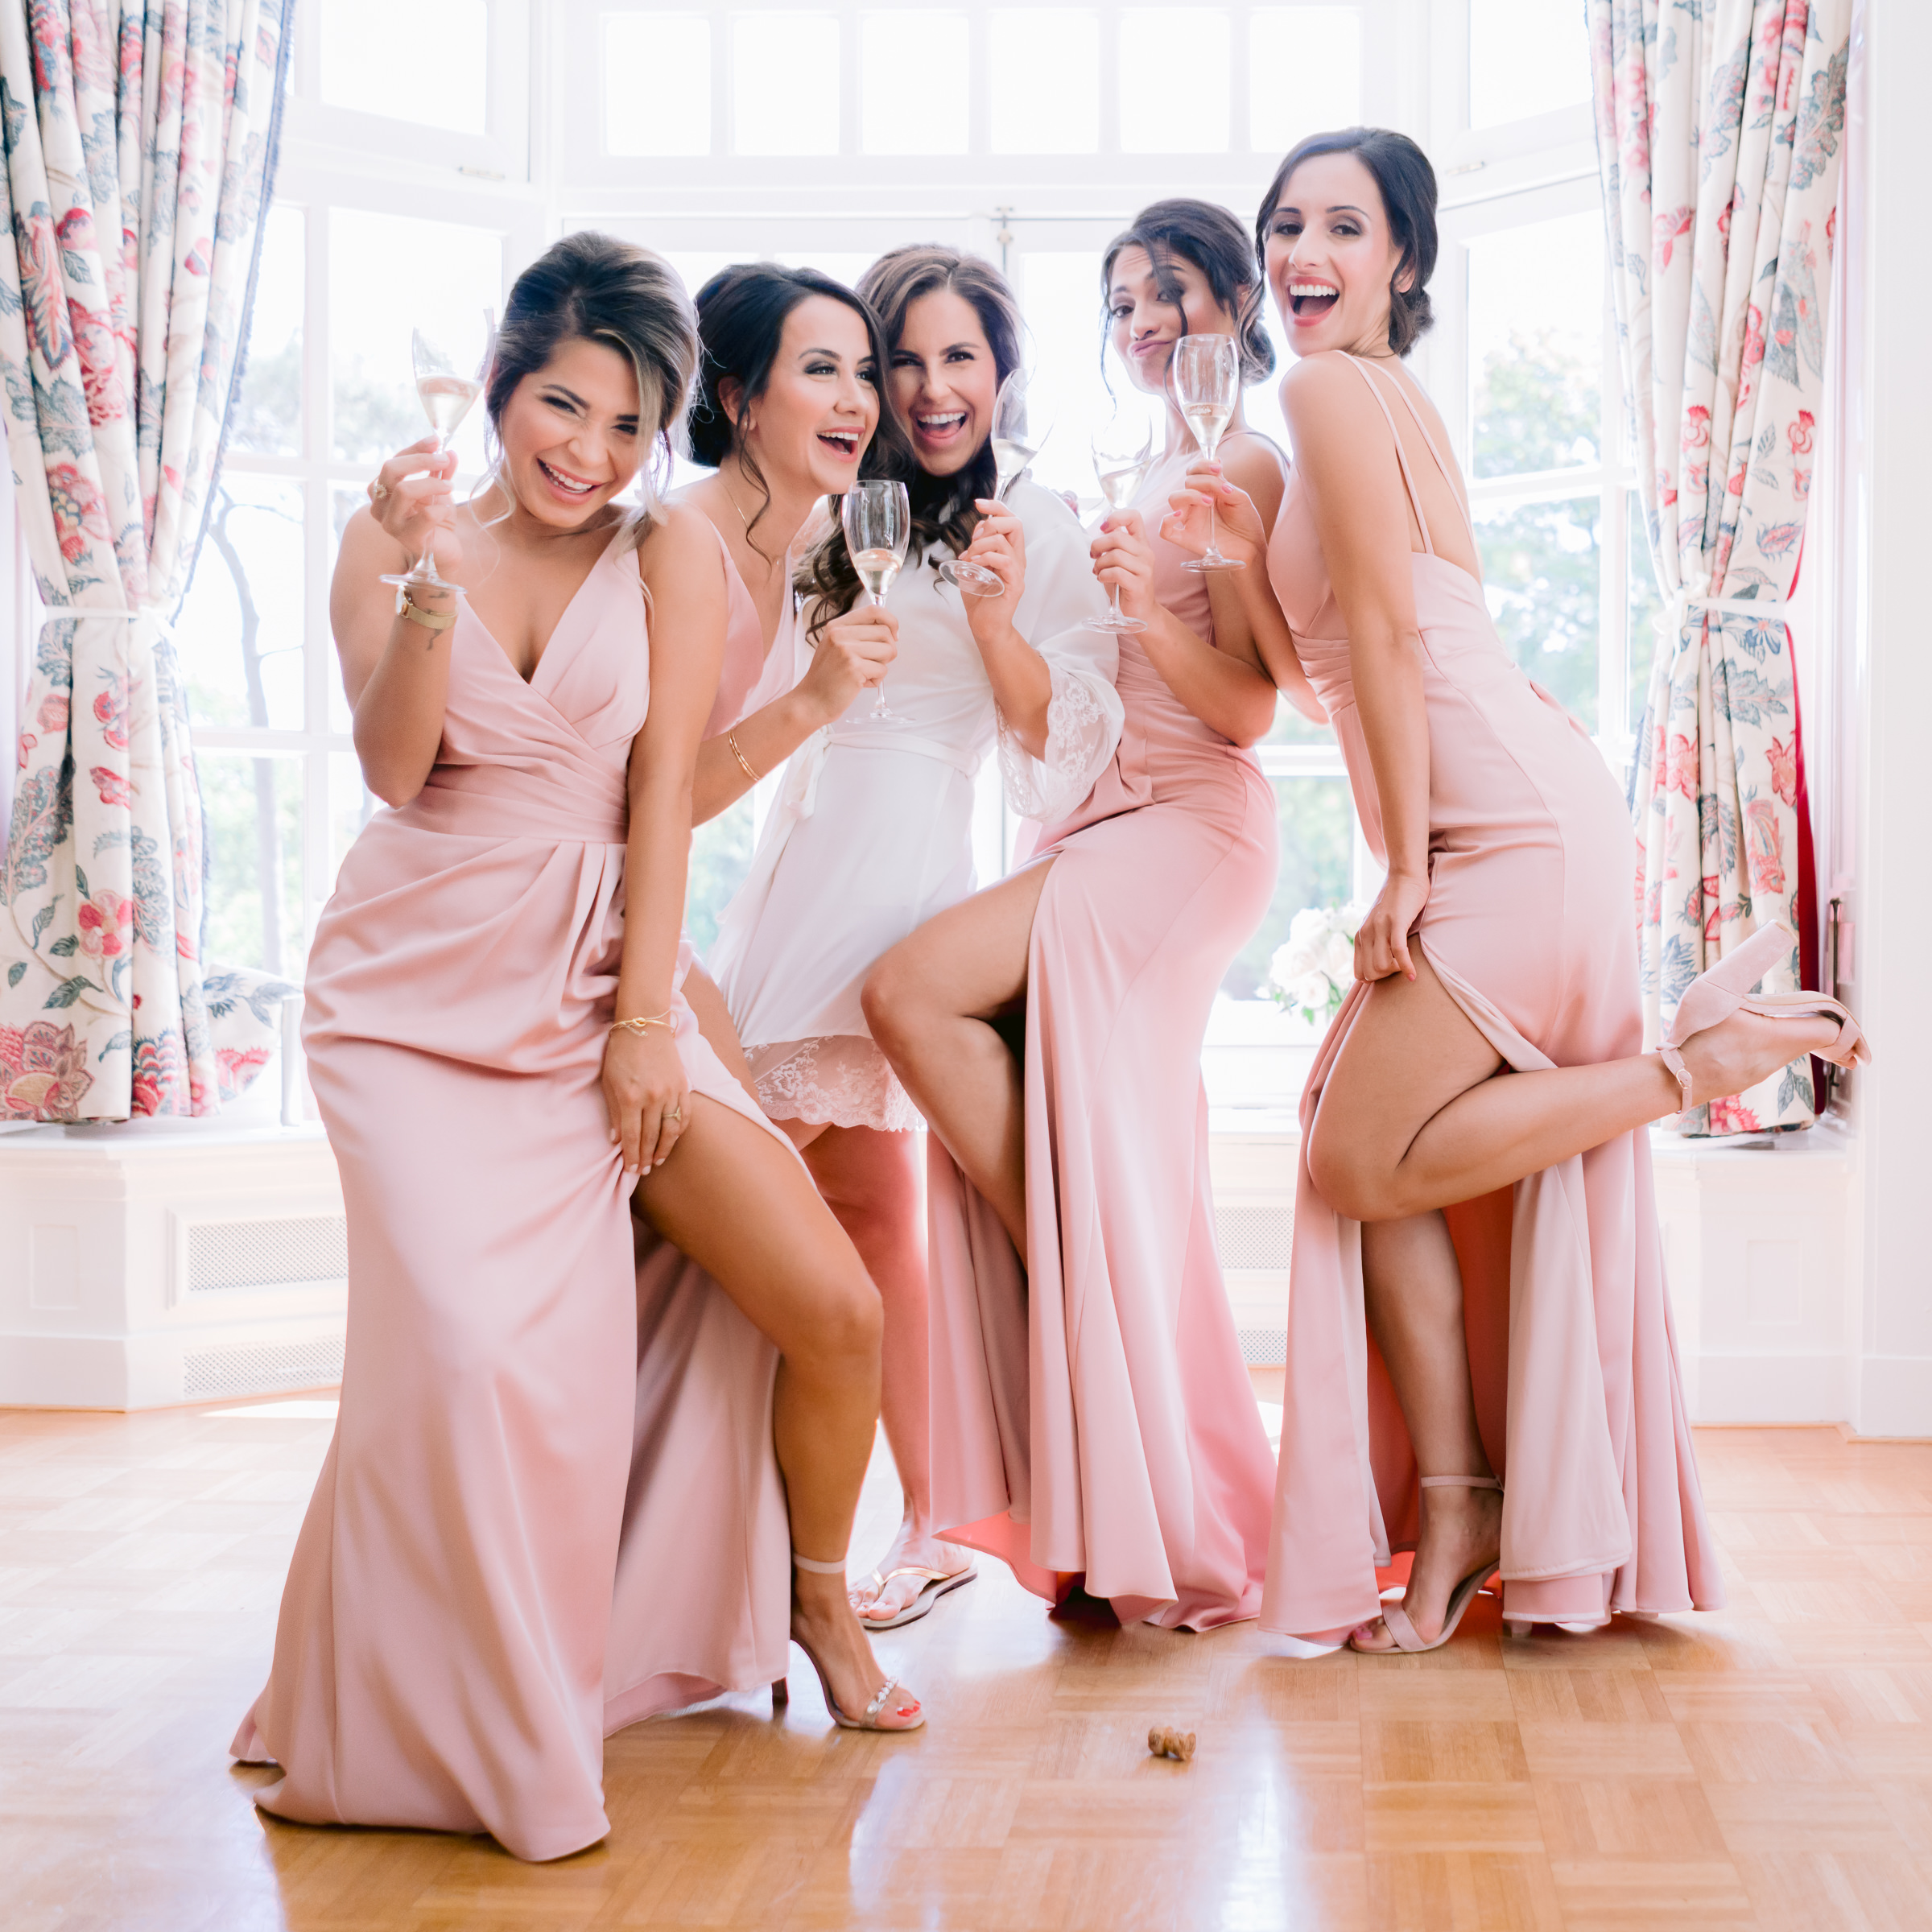 Bridal party wearing pink crepe spaghetti-strap wrap dresses  - photo by Peter van der Lingen